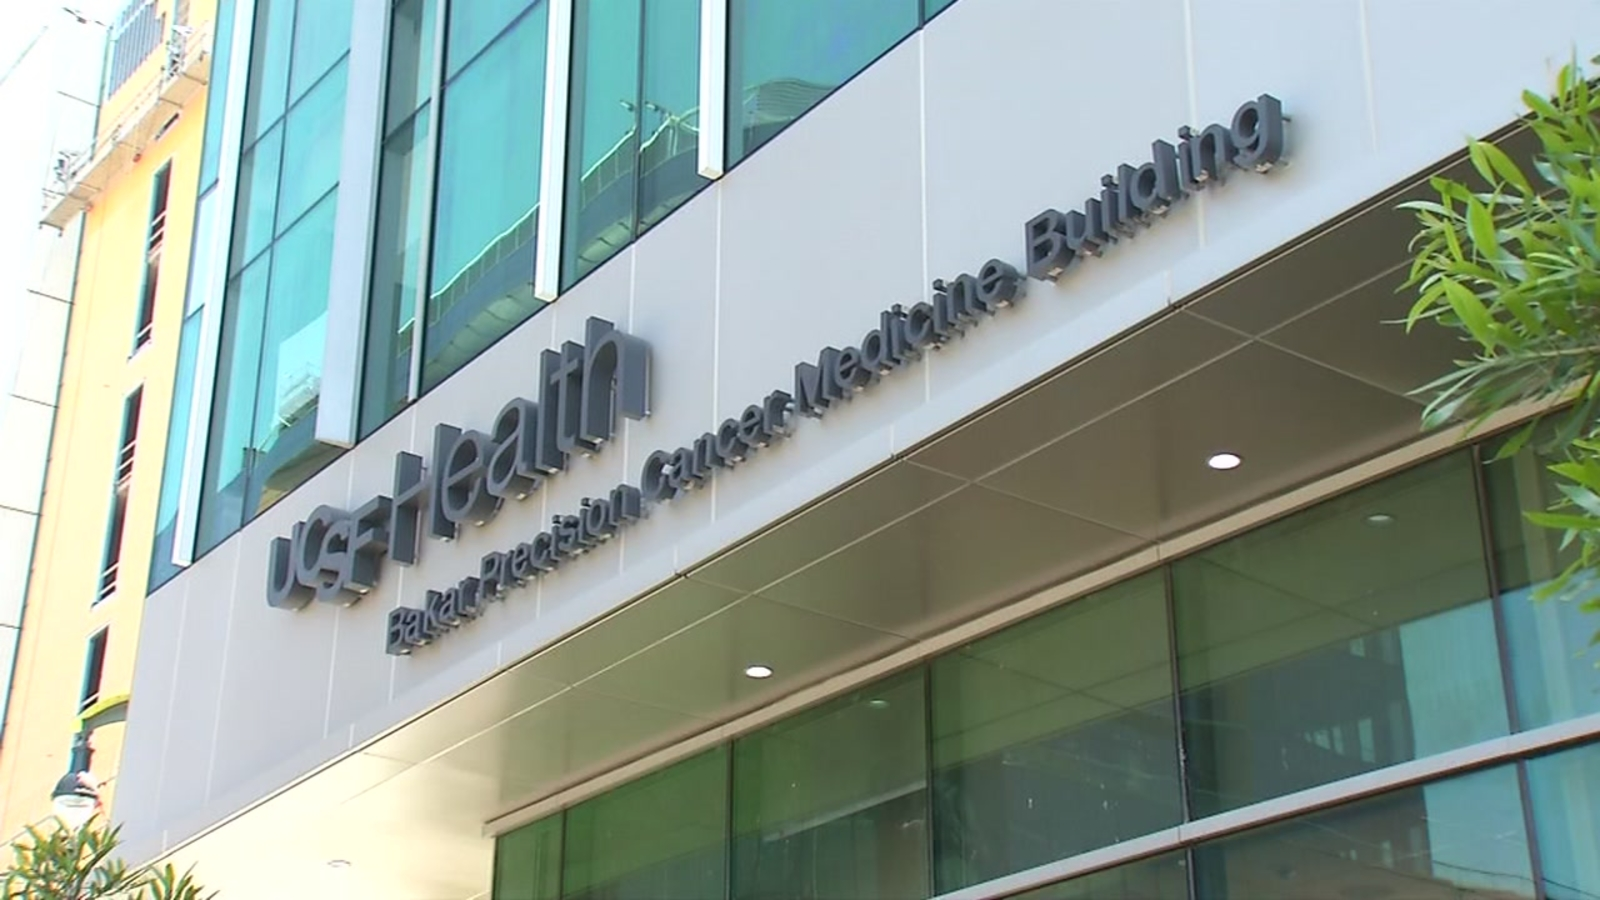 UCSF opens new care center for cancer patients